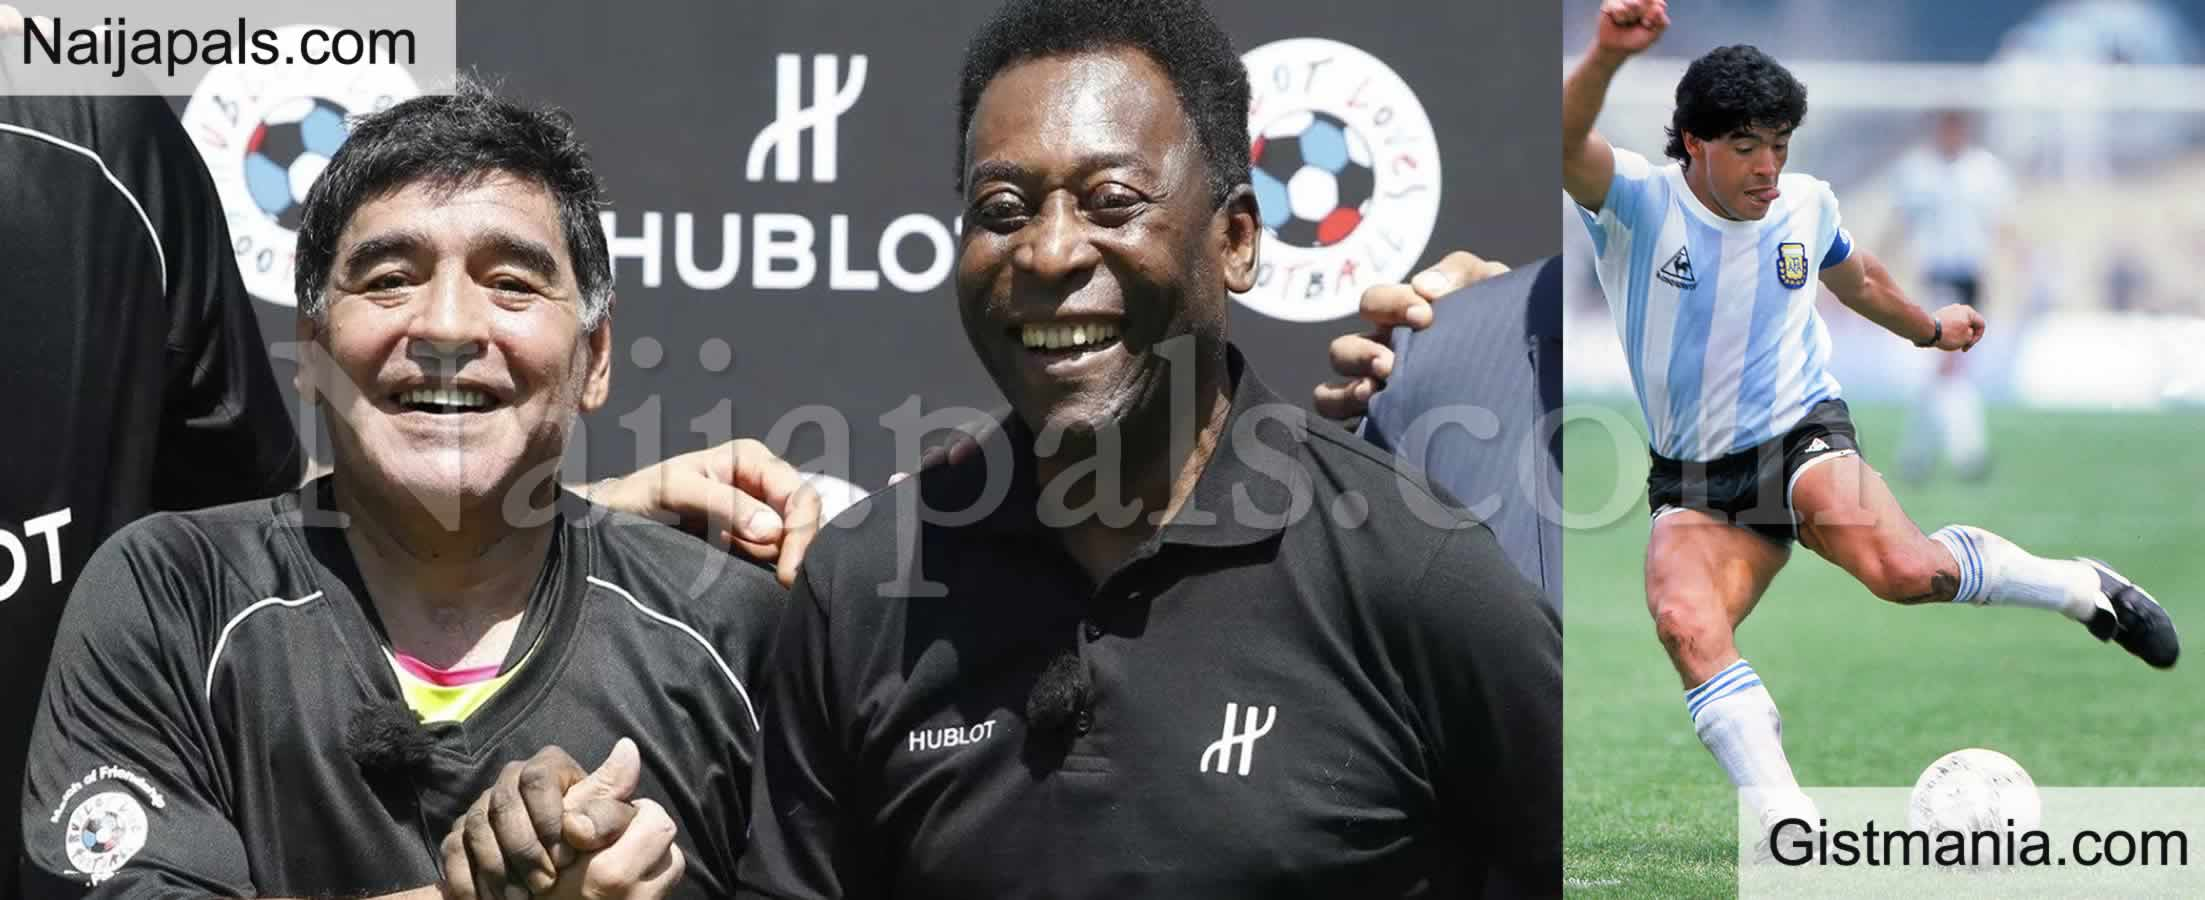 <img alt='.' class='lazyload' data-src='https://img.gistmania.com/emot/news.gif' /> <b>We'll Kick A Ball Together In The Sky Above - Brazil Legend, Pele Reacts To Death Of Maradona</b>